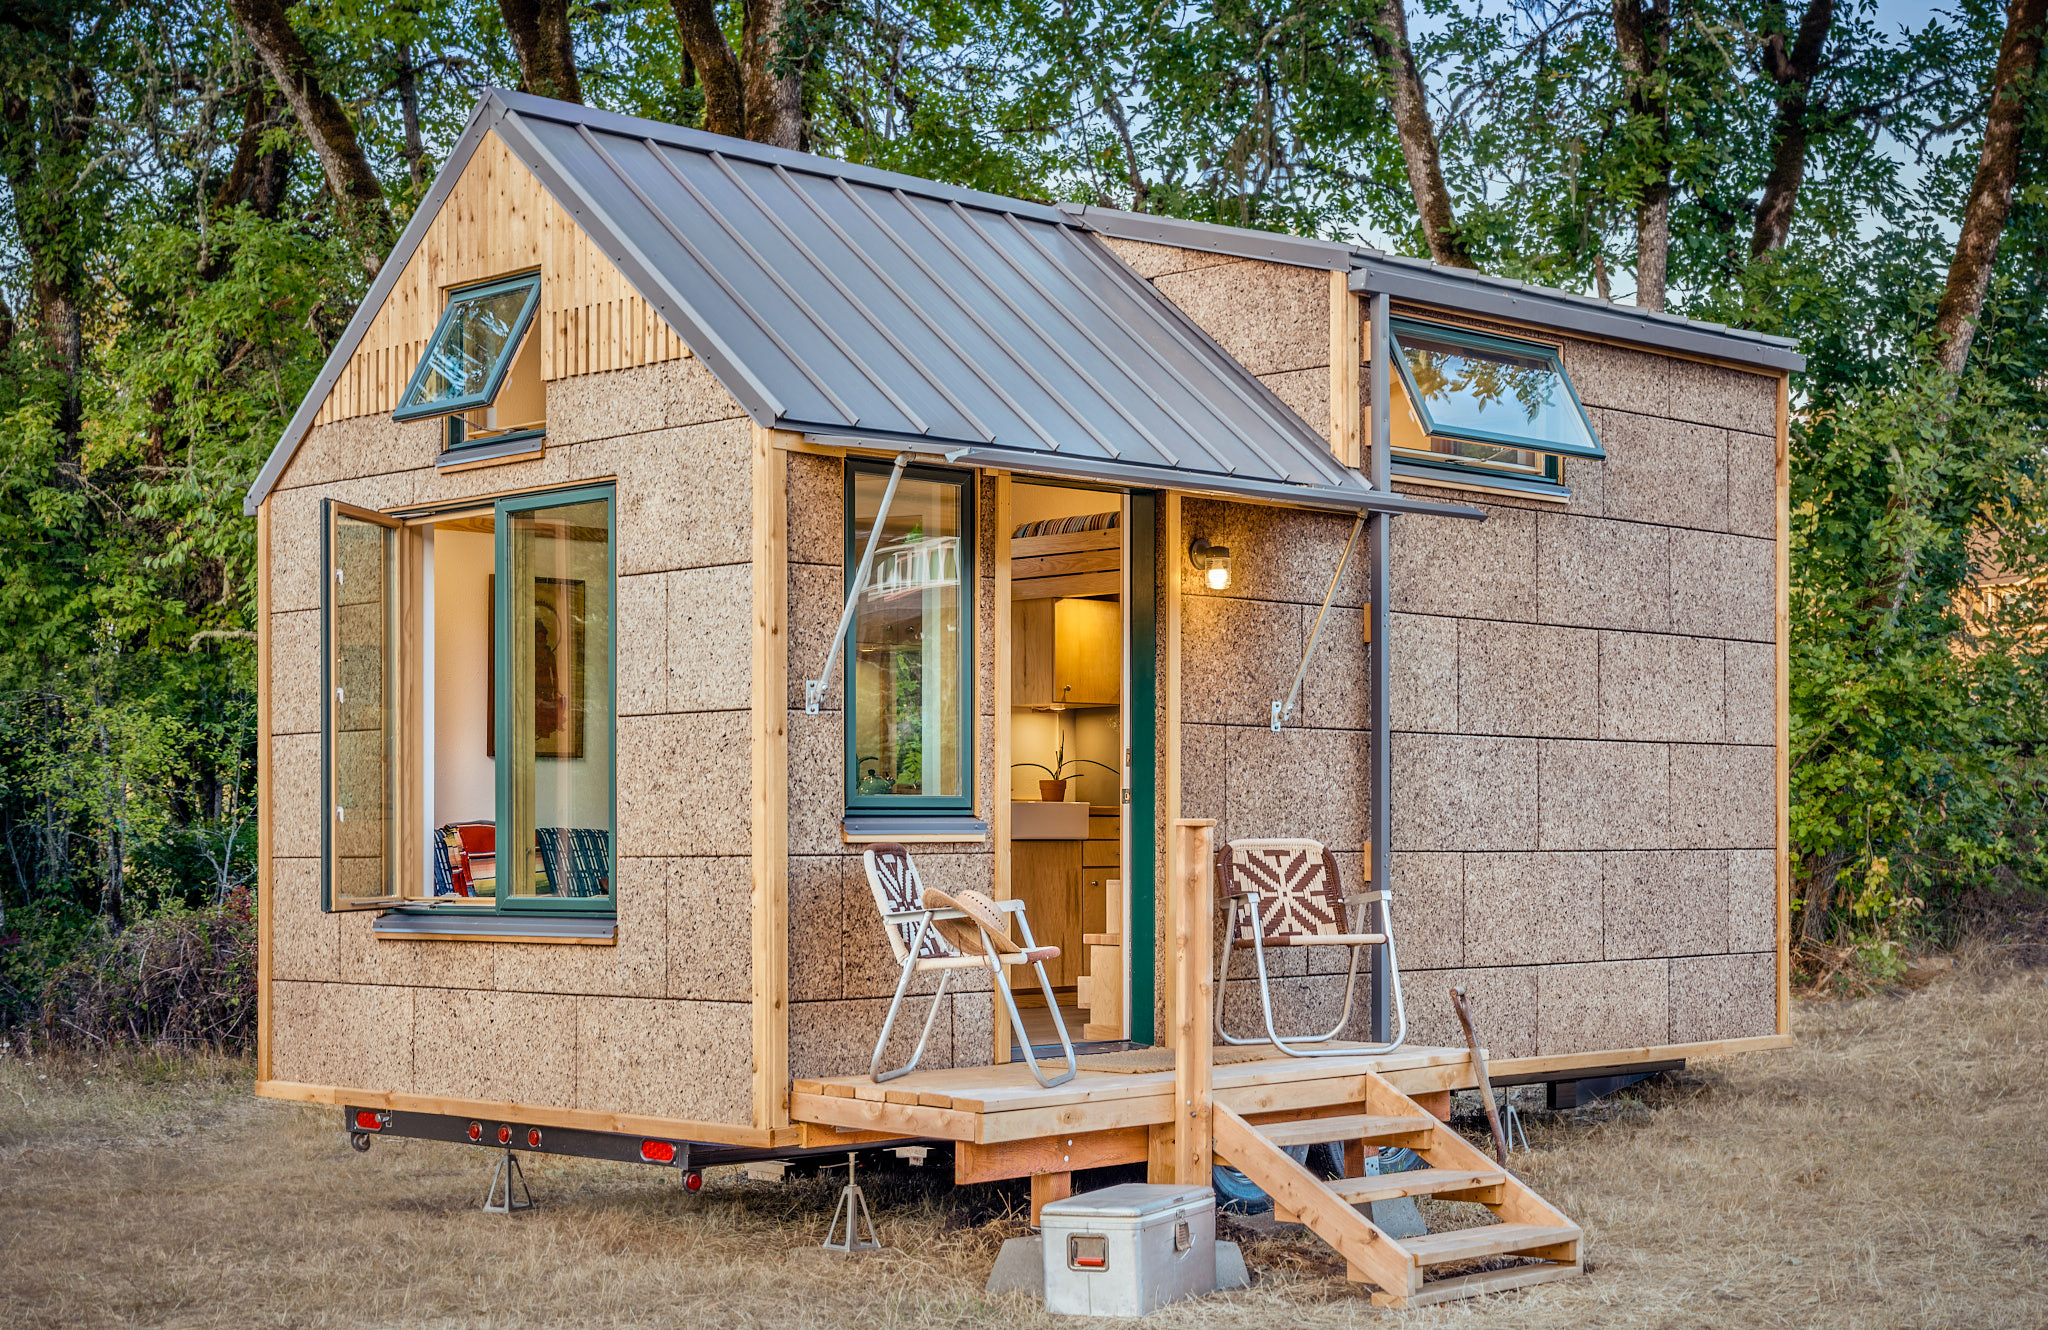 Tiny-House-Culitivate-inc-©-Evan-Kaufman-0001 squarespace.jpg